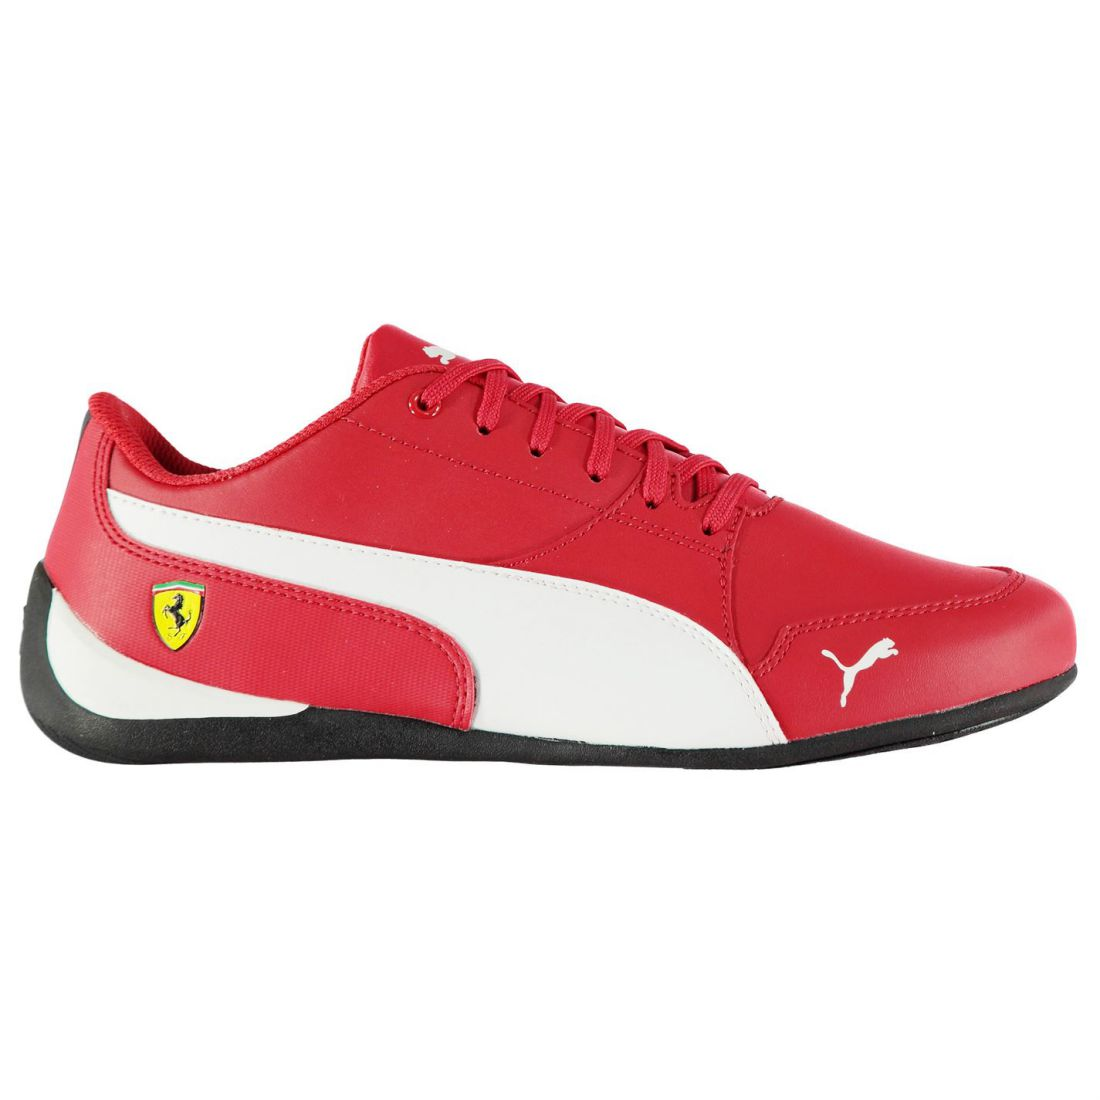 6d38349e7f27 PUMA SF Drift Cat 7 Jr Shoes Ferrari Boy Baby Sports Time Red 35 5. About  this product. Picture 1 of 5  Picture 2 of 5  Picture 3 of 5 ...